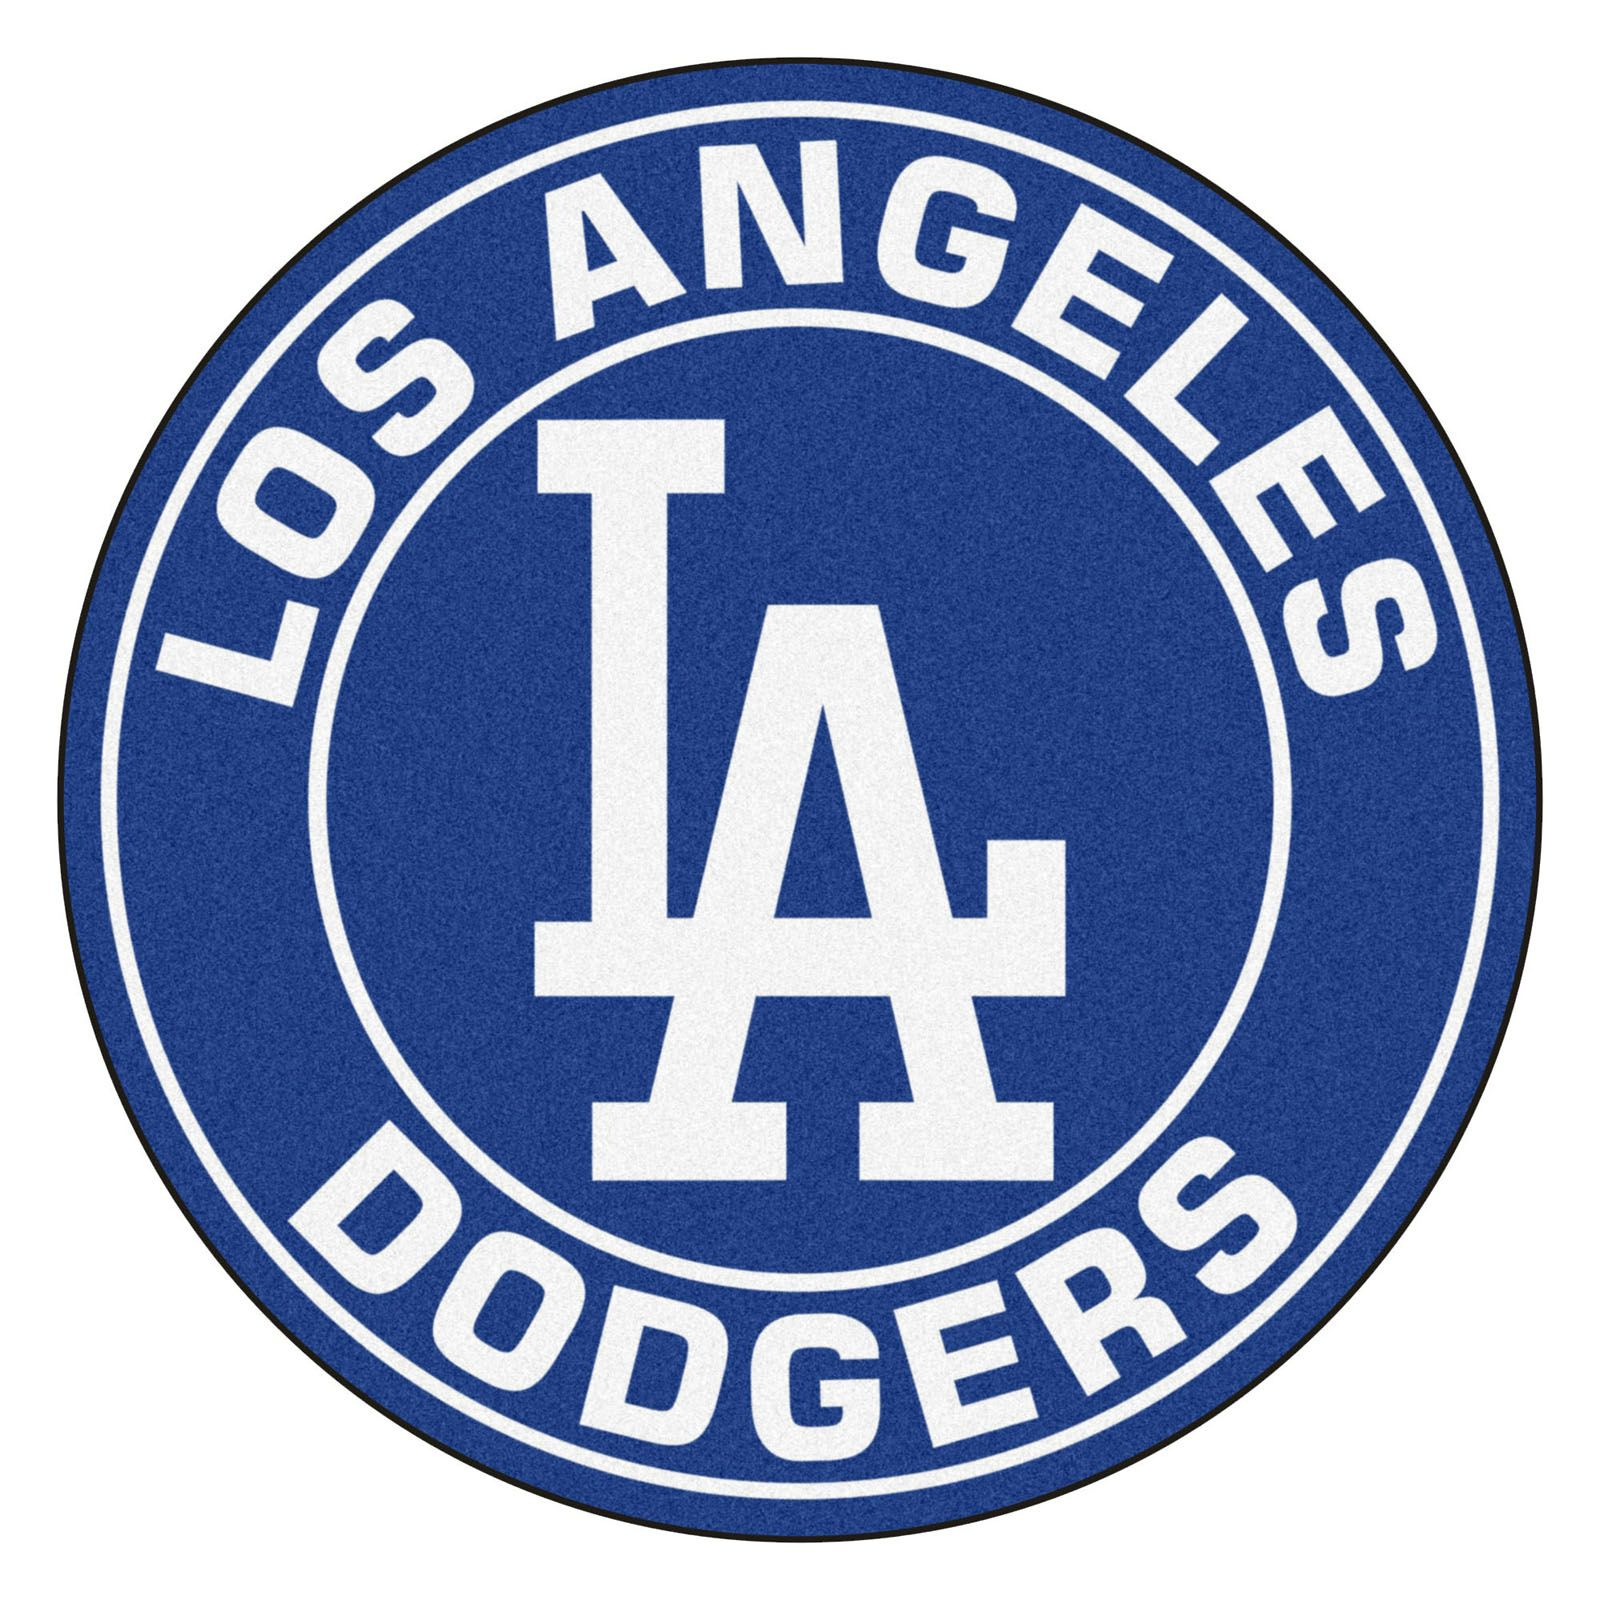 Shape Los Angeles Dodgers Logo Los Angeles Dodgers Logo Los Angeles Dodgers Dodgers